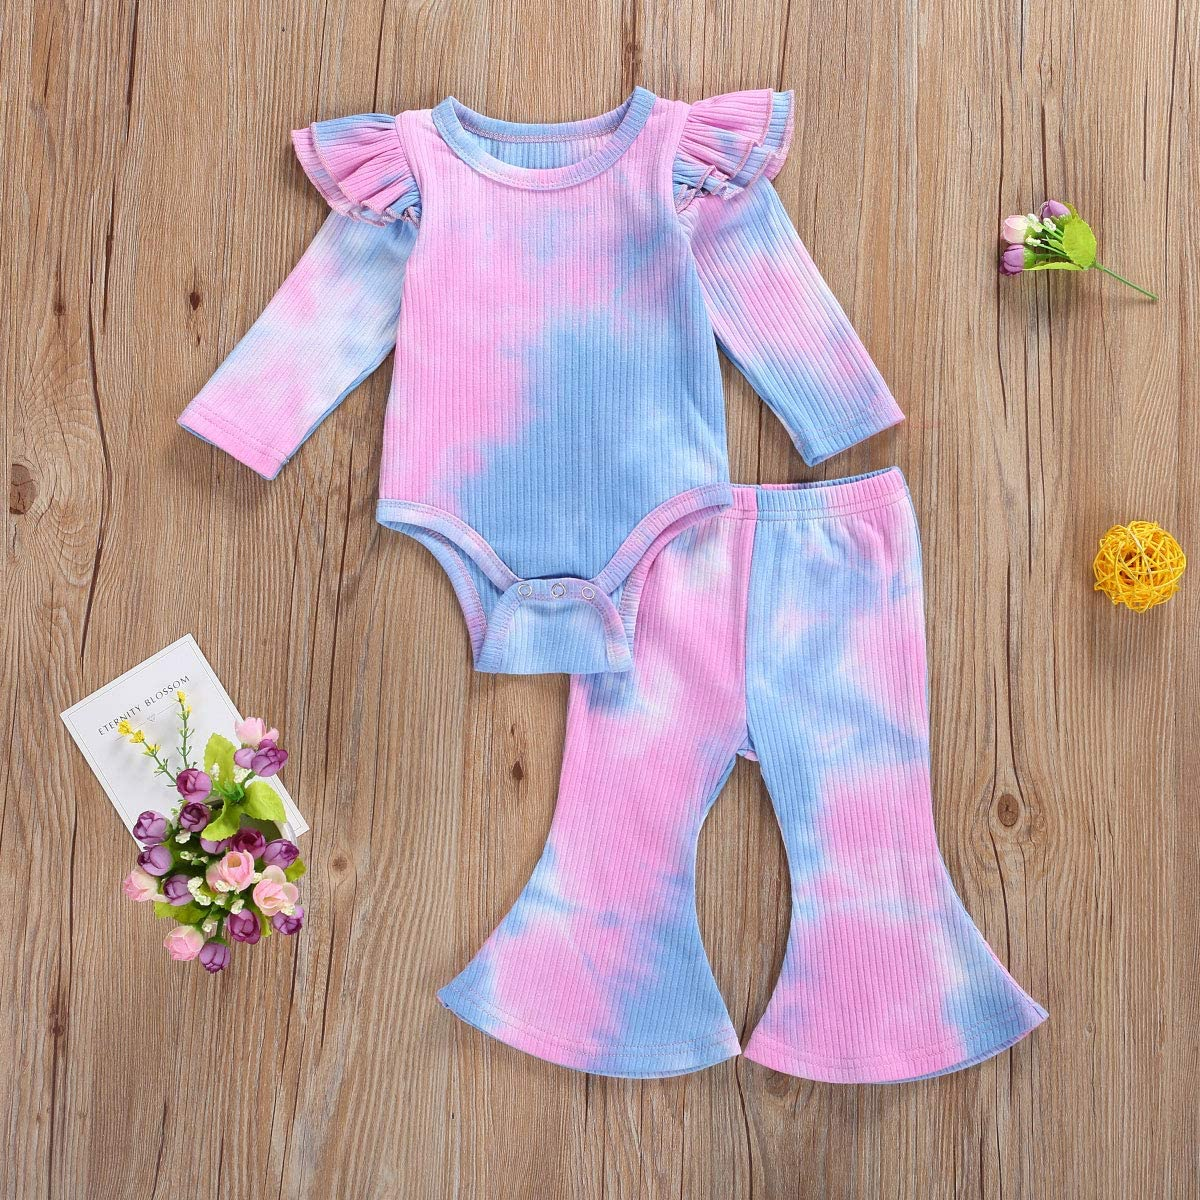 Flare Pants 2Pcs Clothes Set Newborn Baby Girl Bell Bottom Outfit Long Sleeve Romper Bodysuit Top